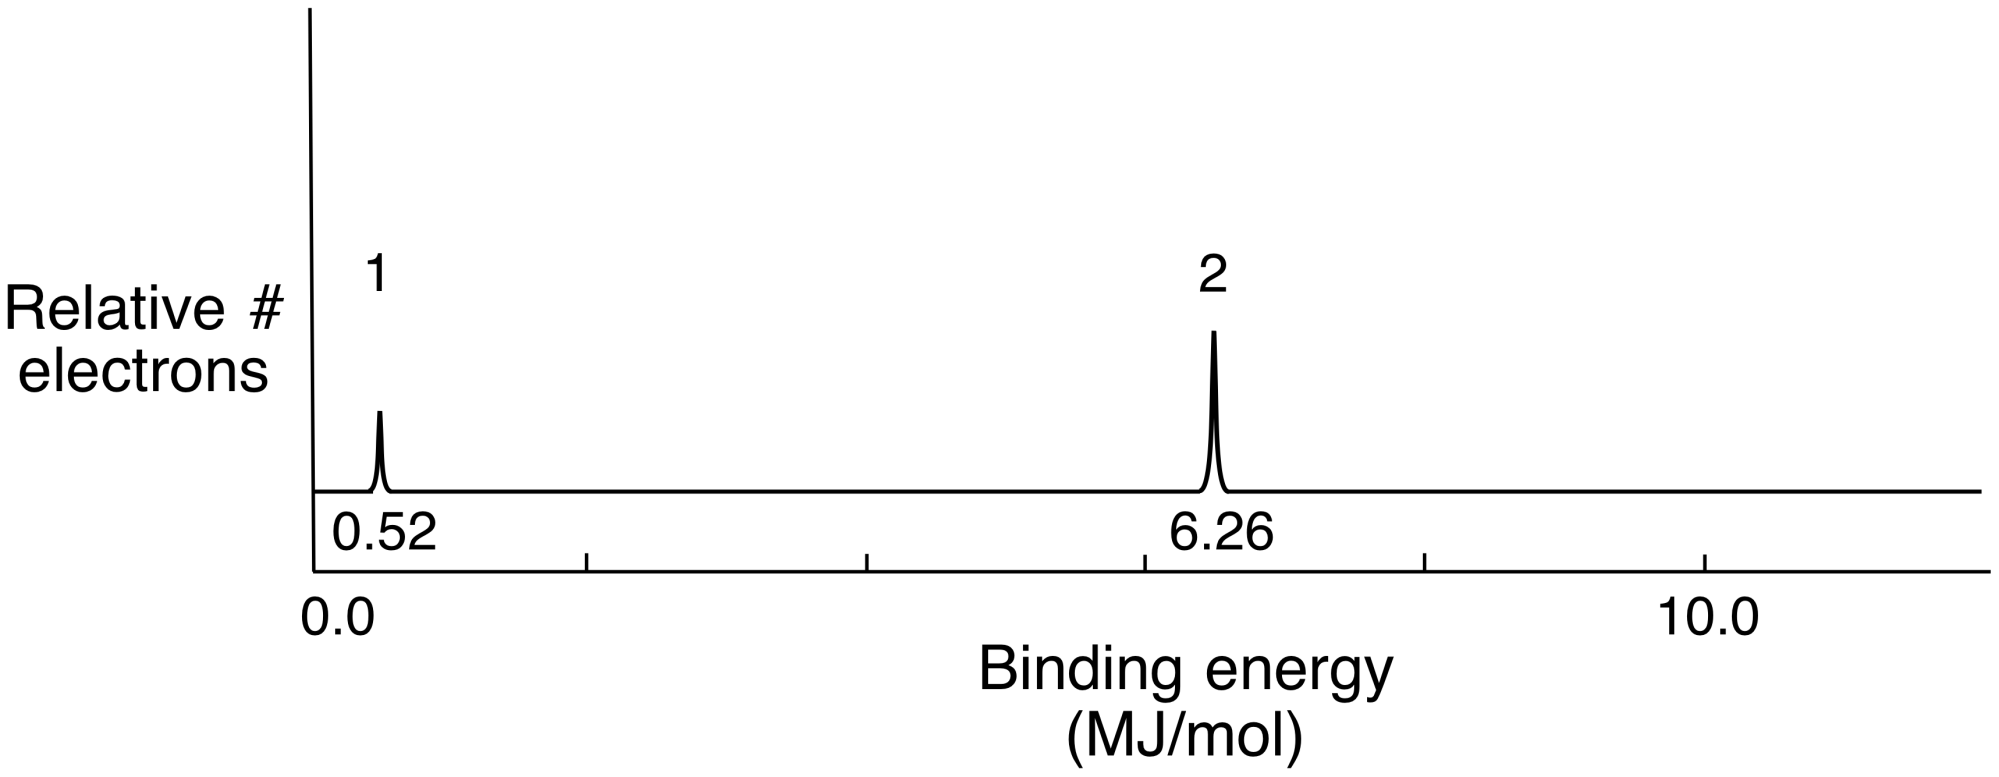 hight resolution of pes spectrum of lithium which has 1 electron with a binding energy of 0 52 mj